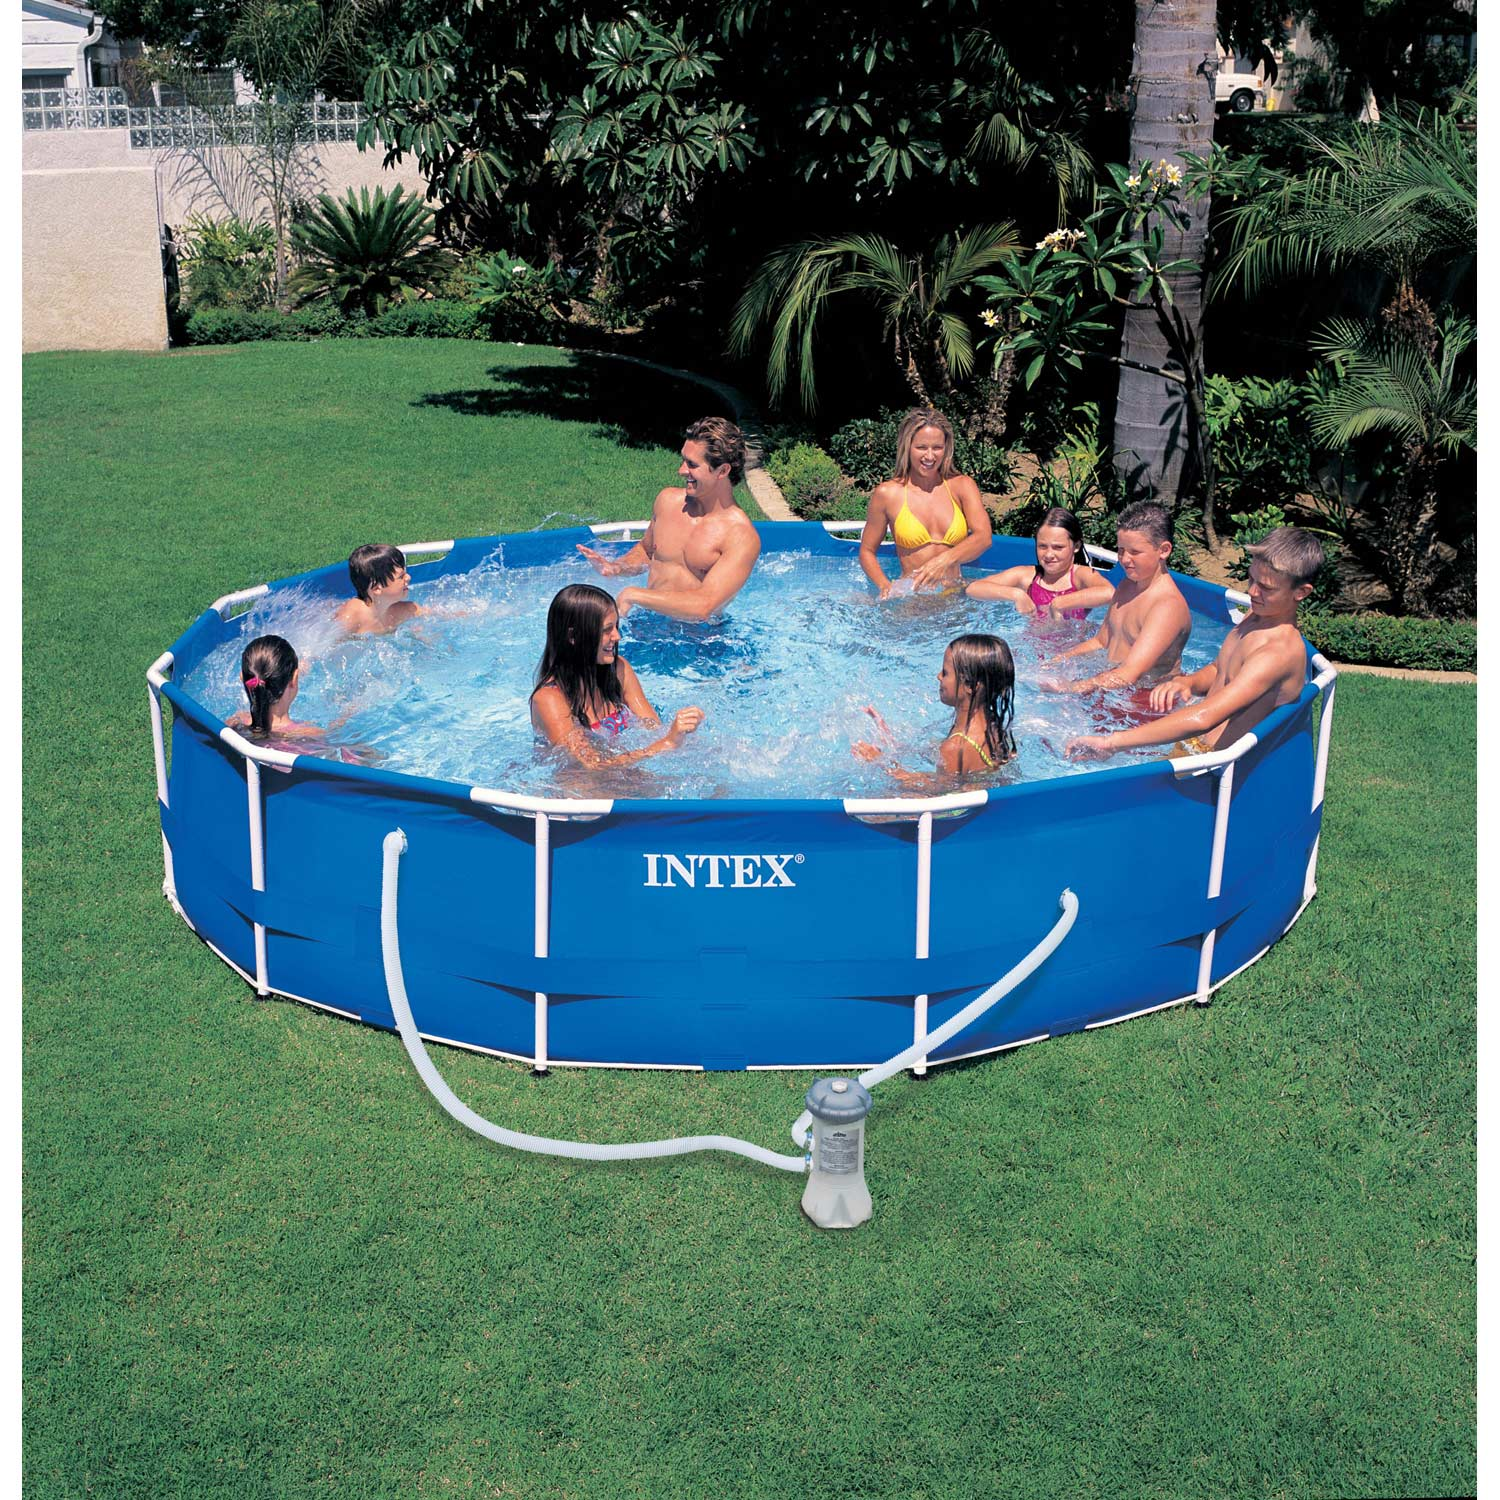 Piscine hors sol autoportante tubulaire metal frame intex for Piscine hors sol intex ronde